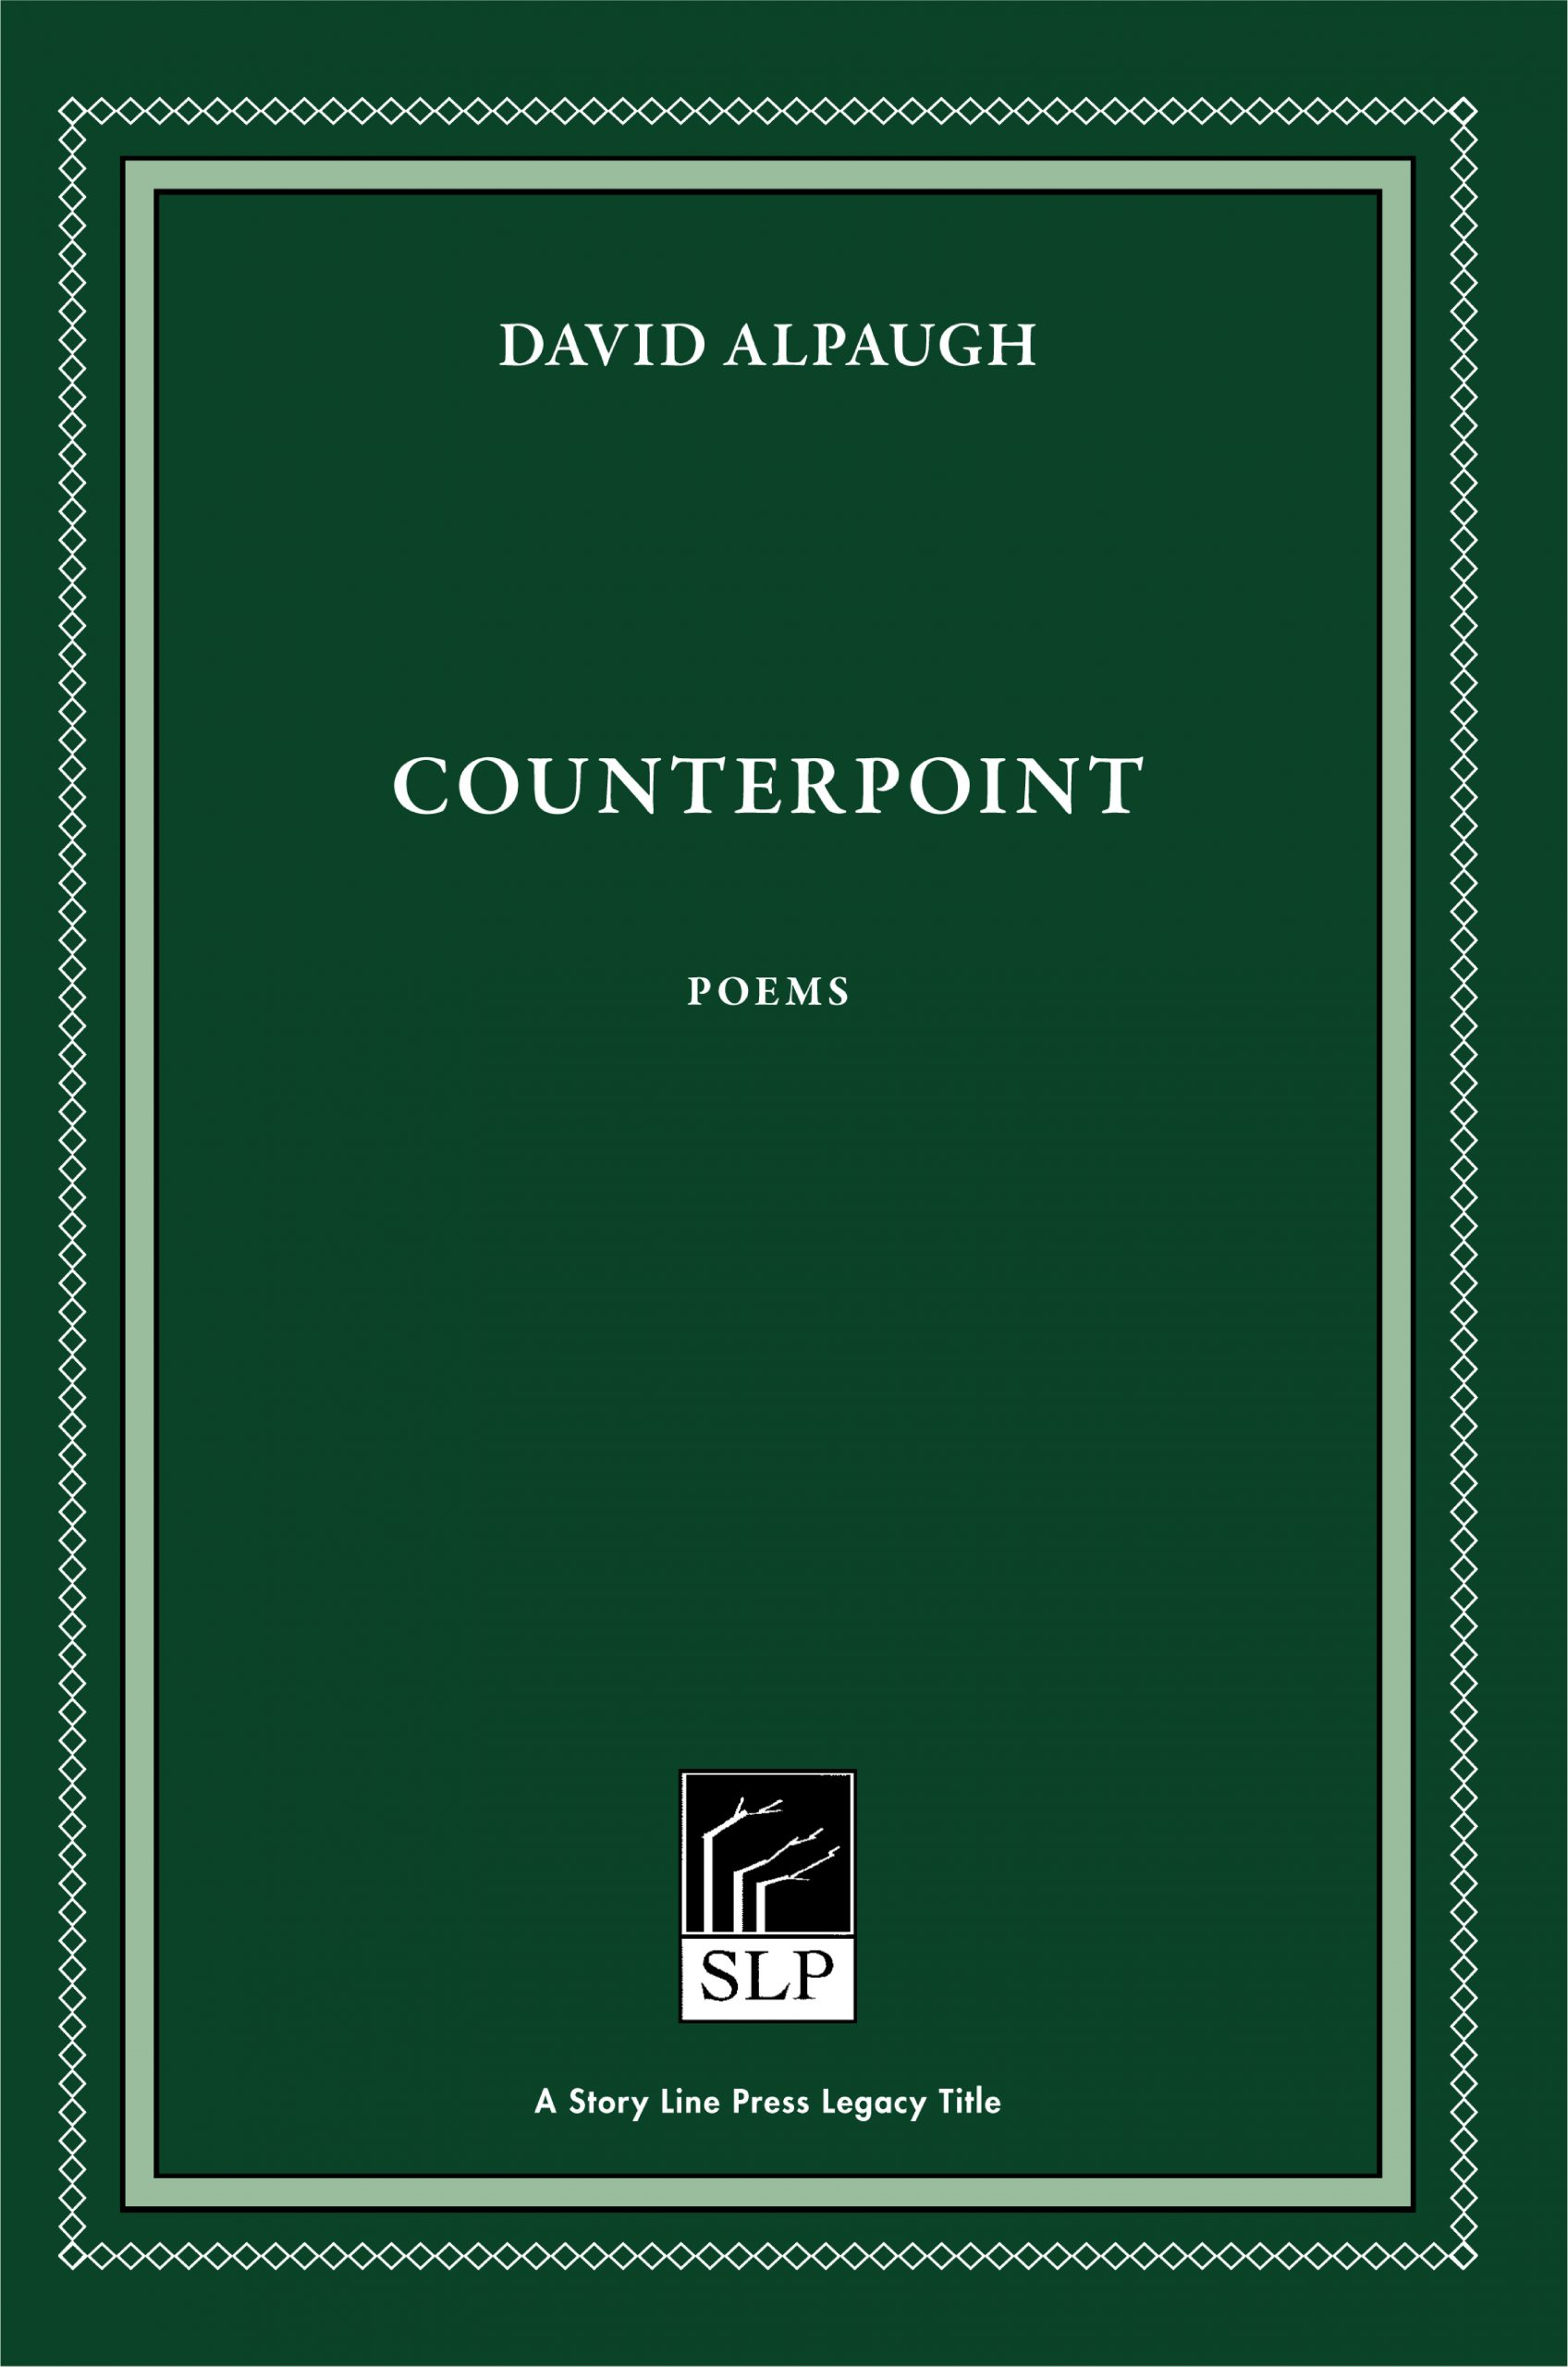 Story Line Press legacy tittle, David Alpaugh Counterpoint Poems, white script text against emerald green background.